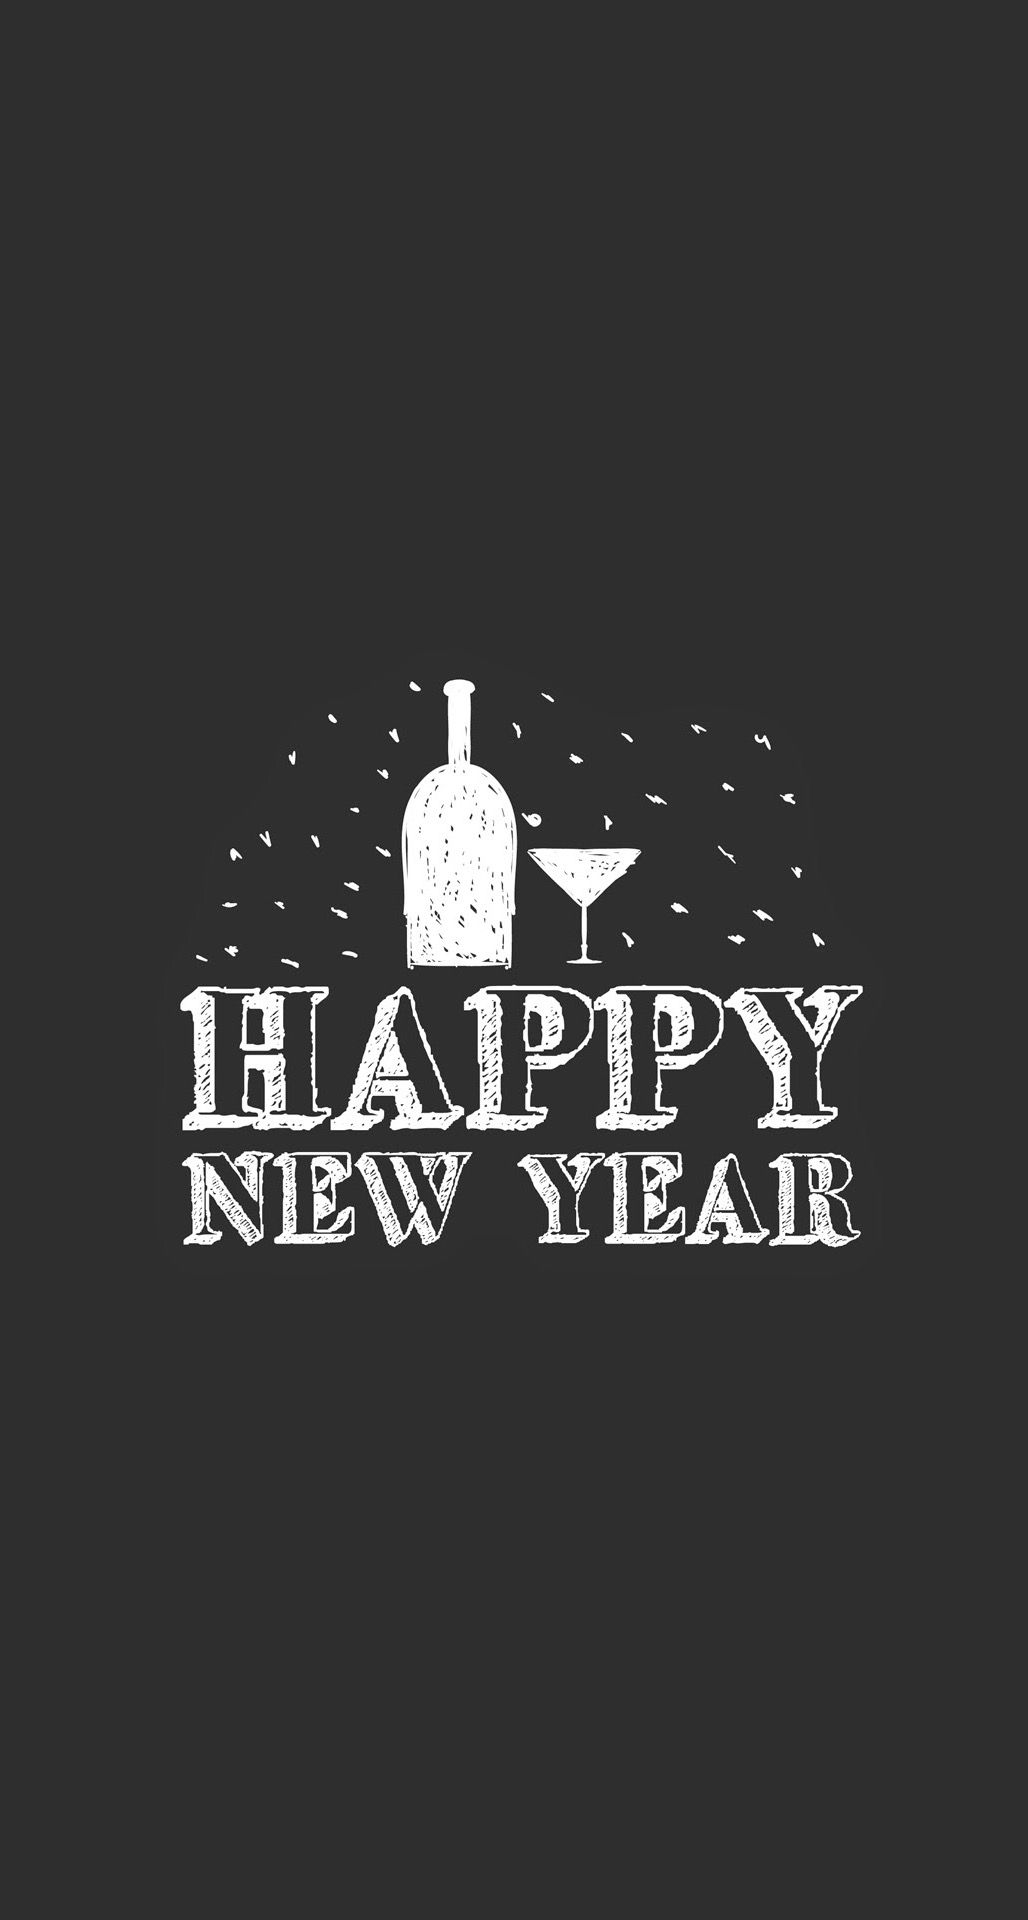 Happy New Year Drinks Minimal iPhone 6 Plus HD Wallpaper  Happy